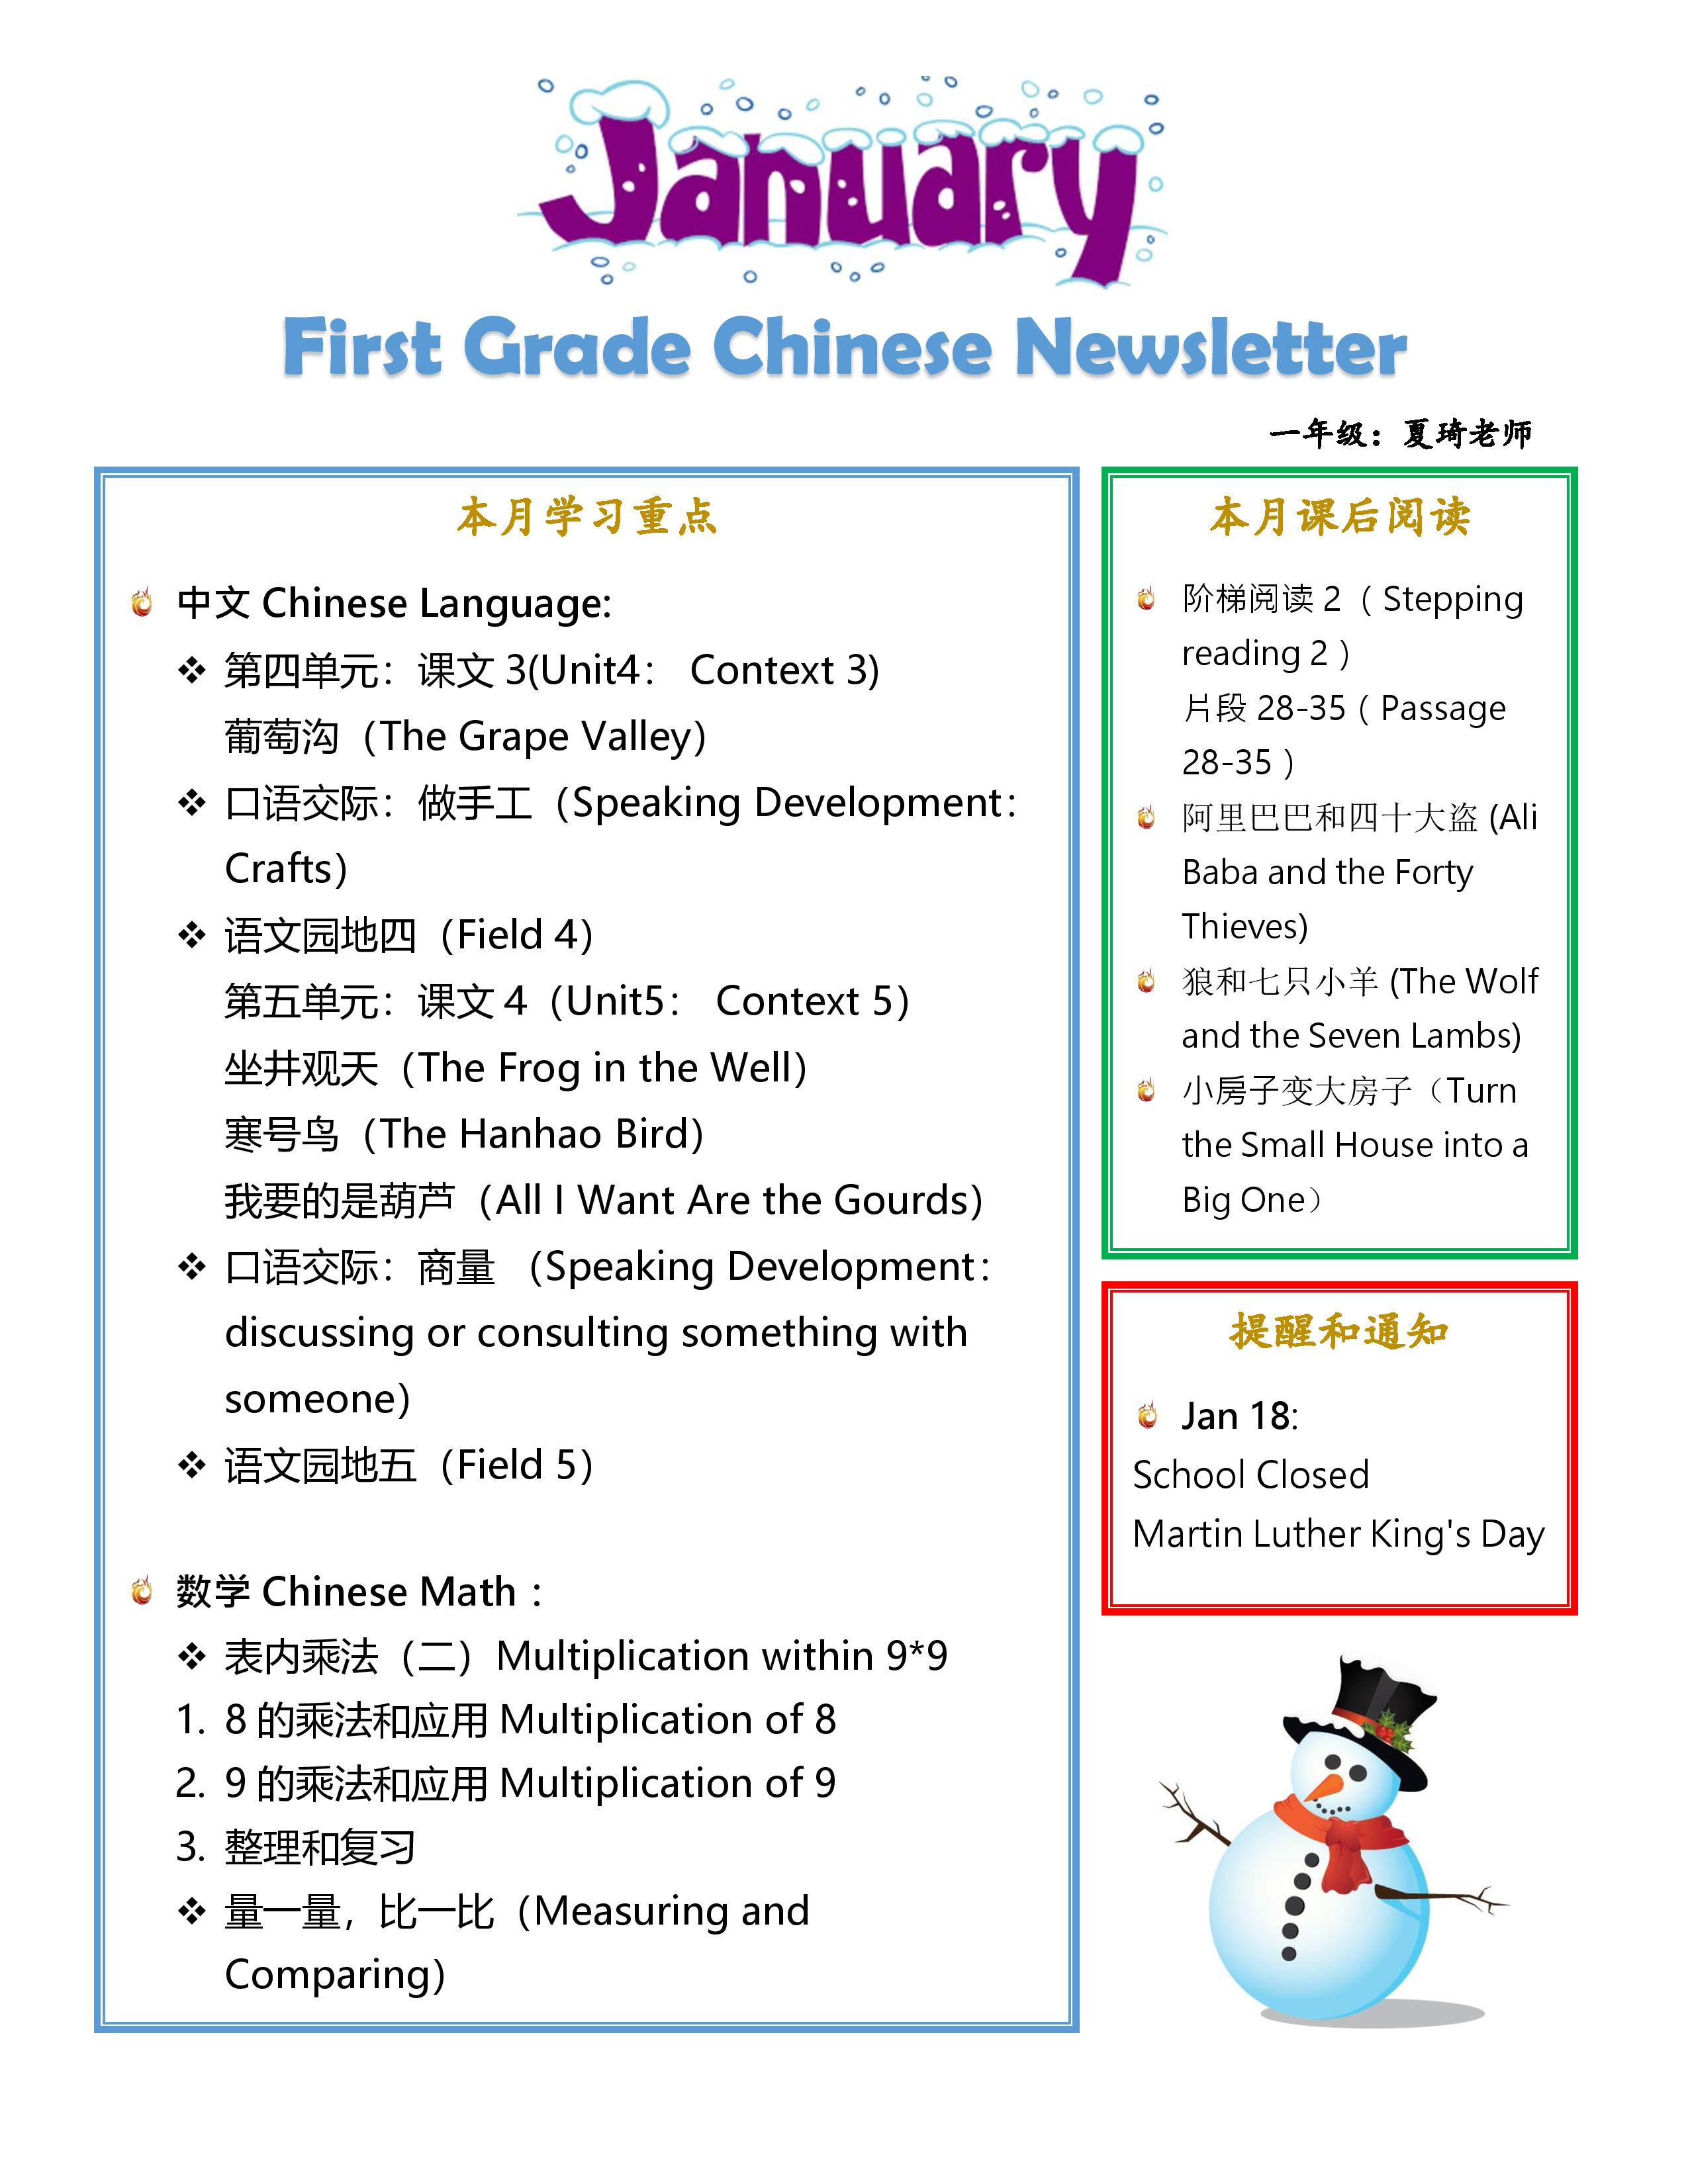 Grade 1 Chinese Newsletter